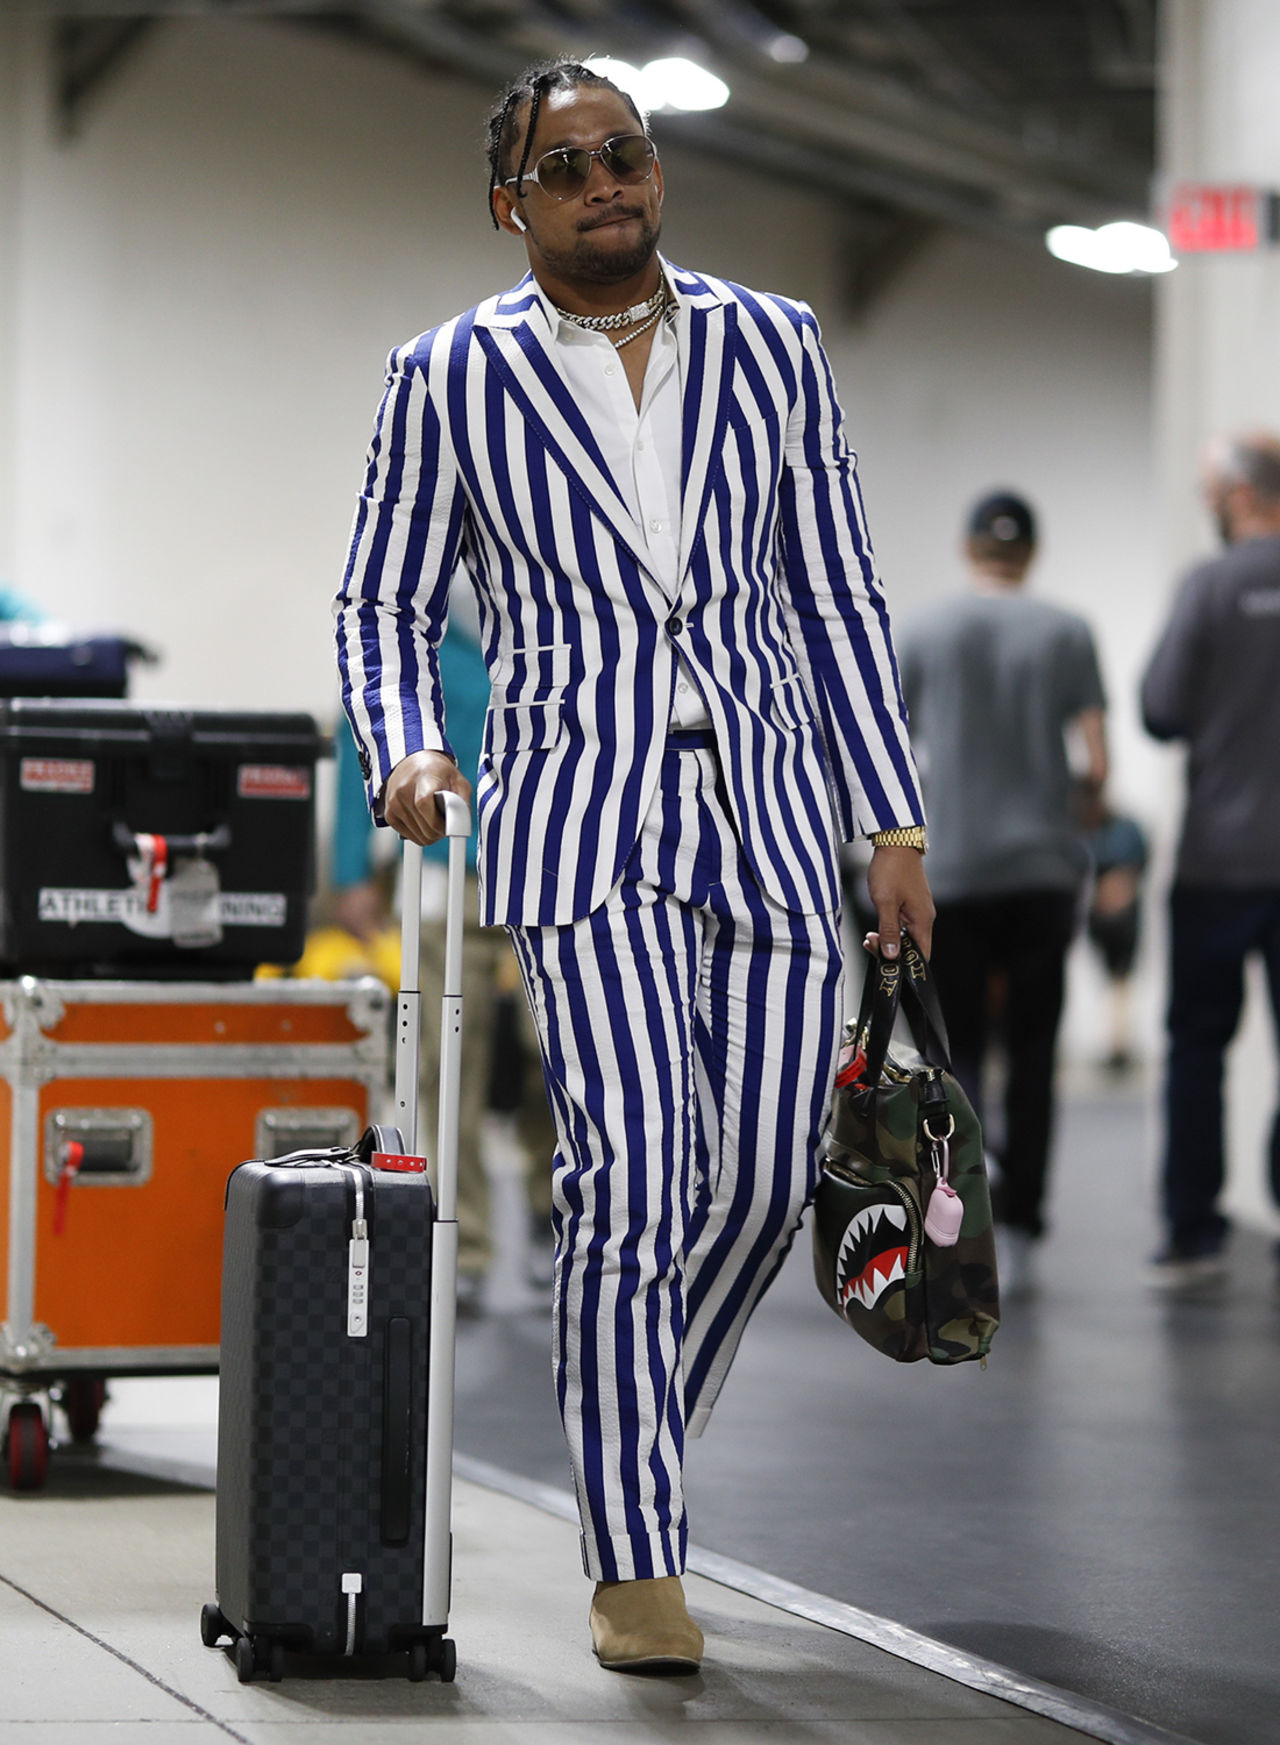 Miami Dolphins wide receiver Albert Wilson (15) arrives before an NFL football game against the Pittsburgh Steelers, Monday, Oct. 28, 2019 in Pittsburgh.